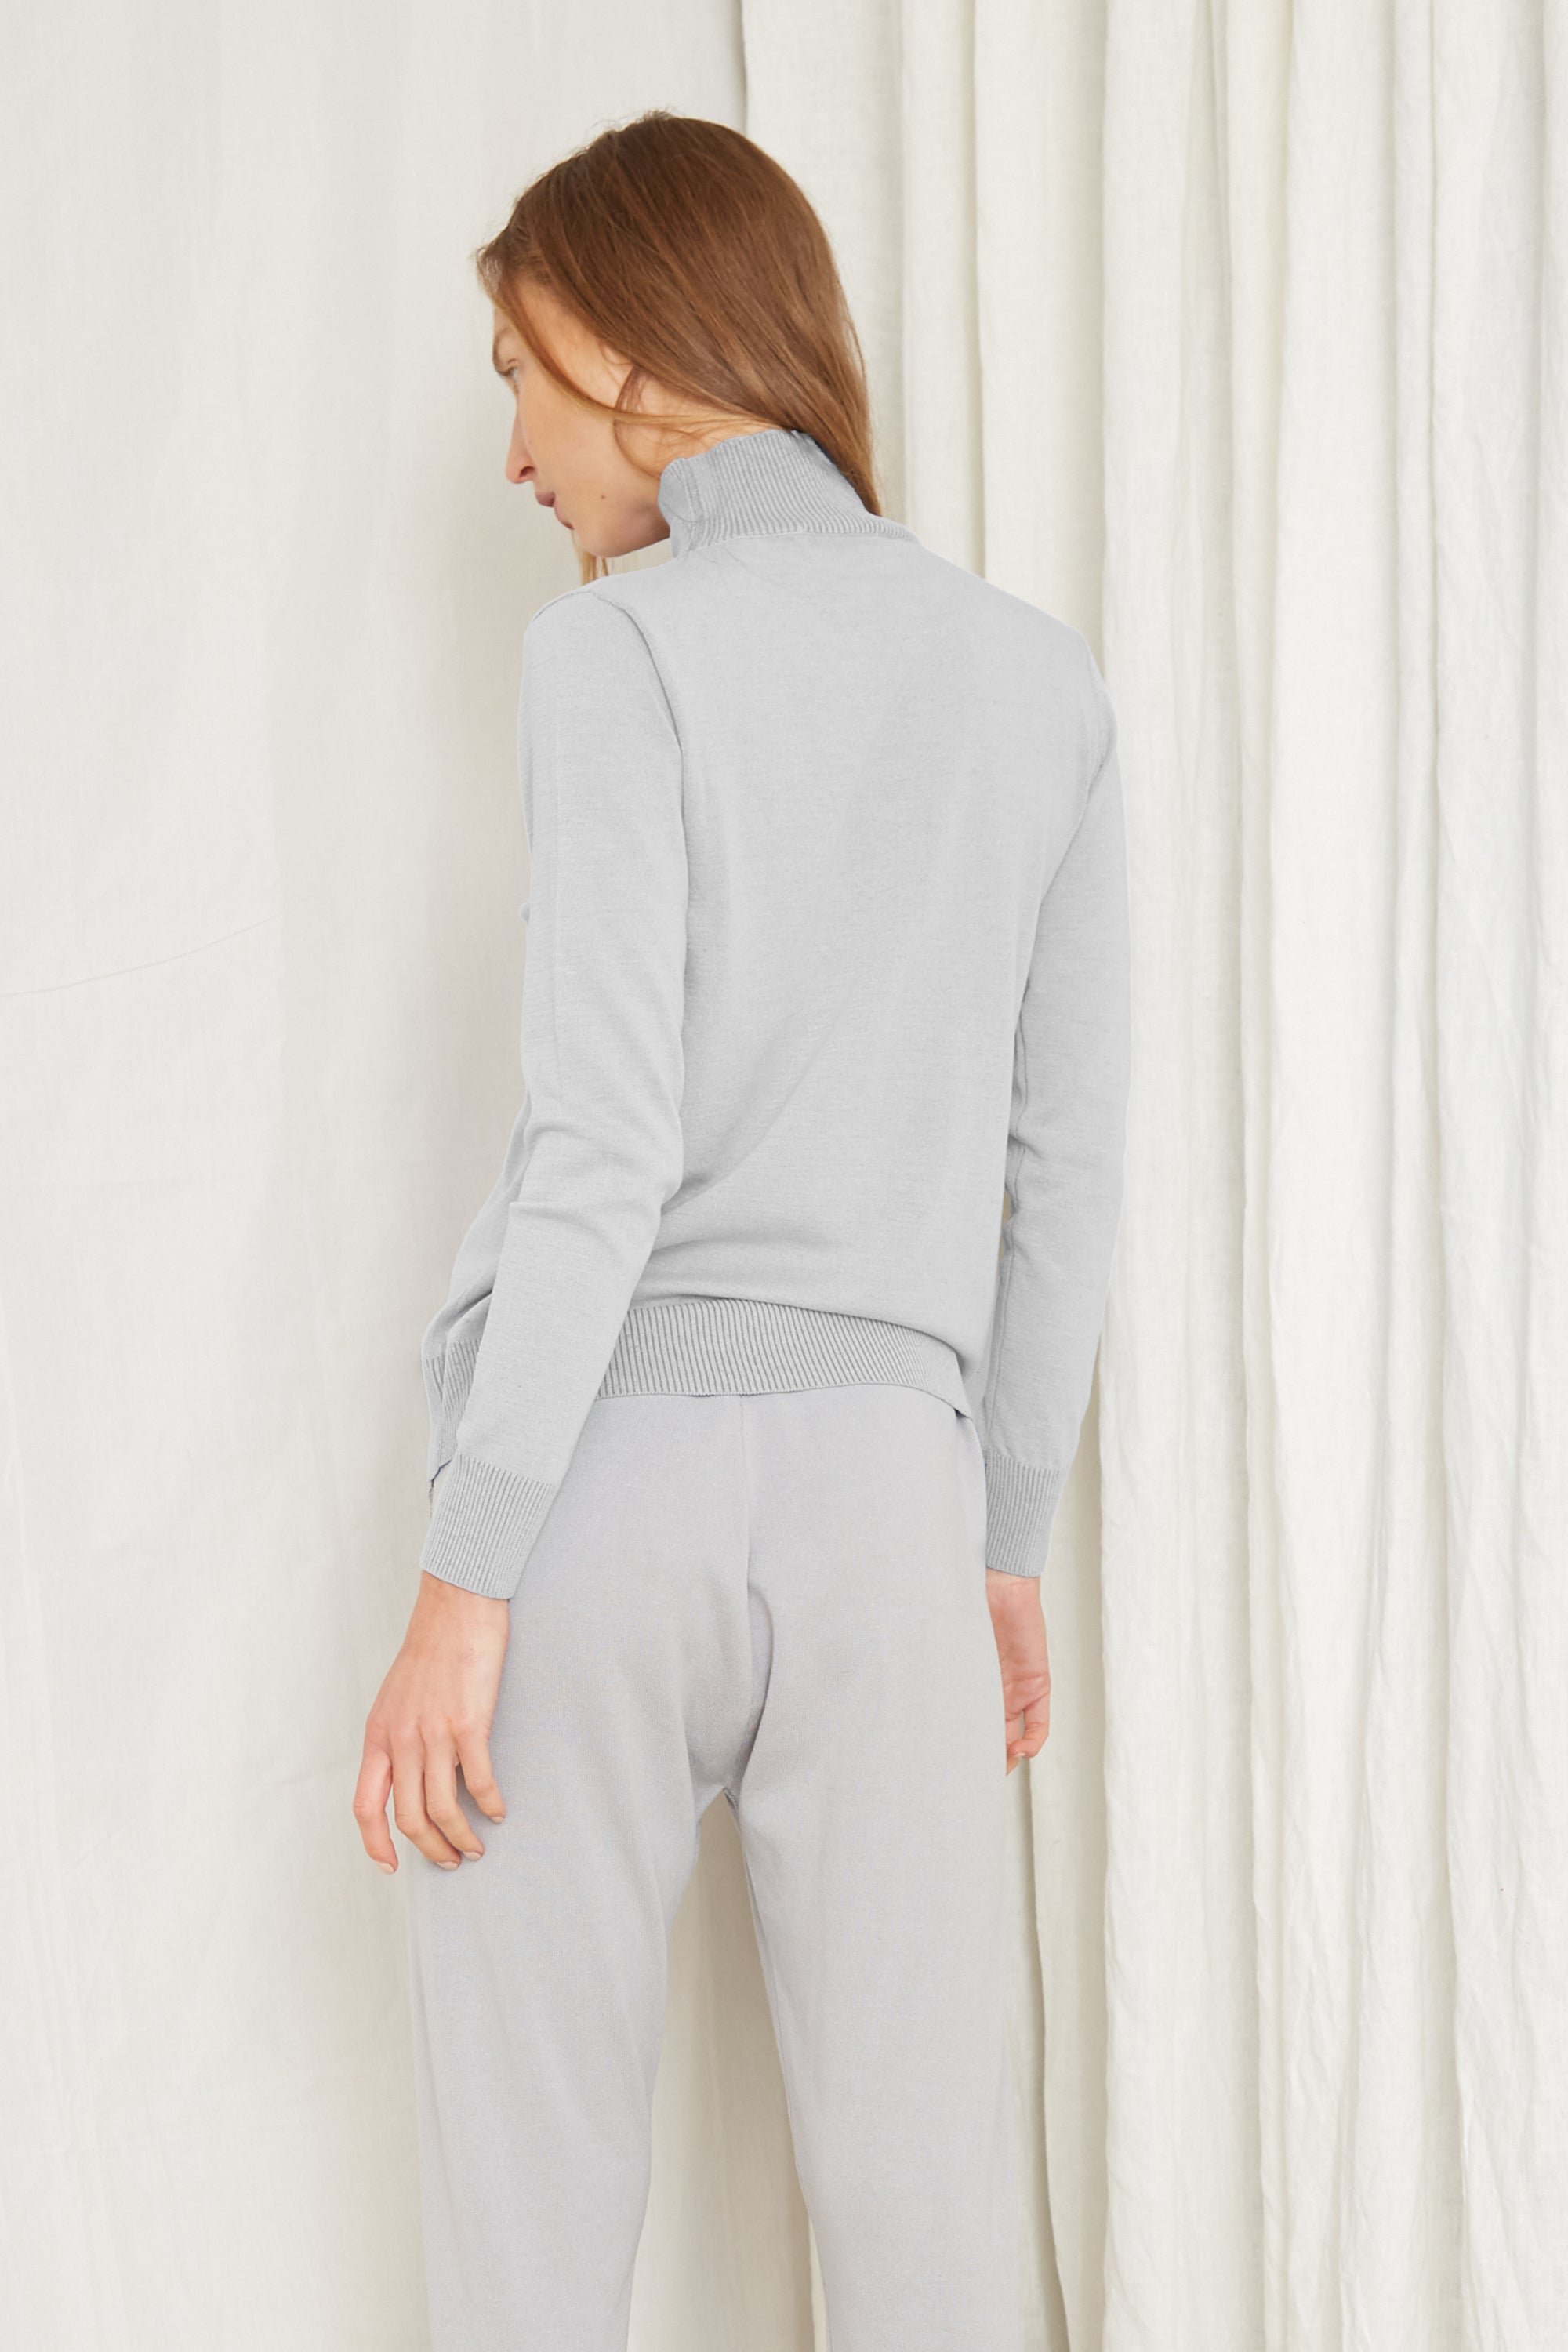 FINE DAYS KNIT TURTLENECK | GREY